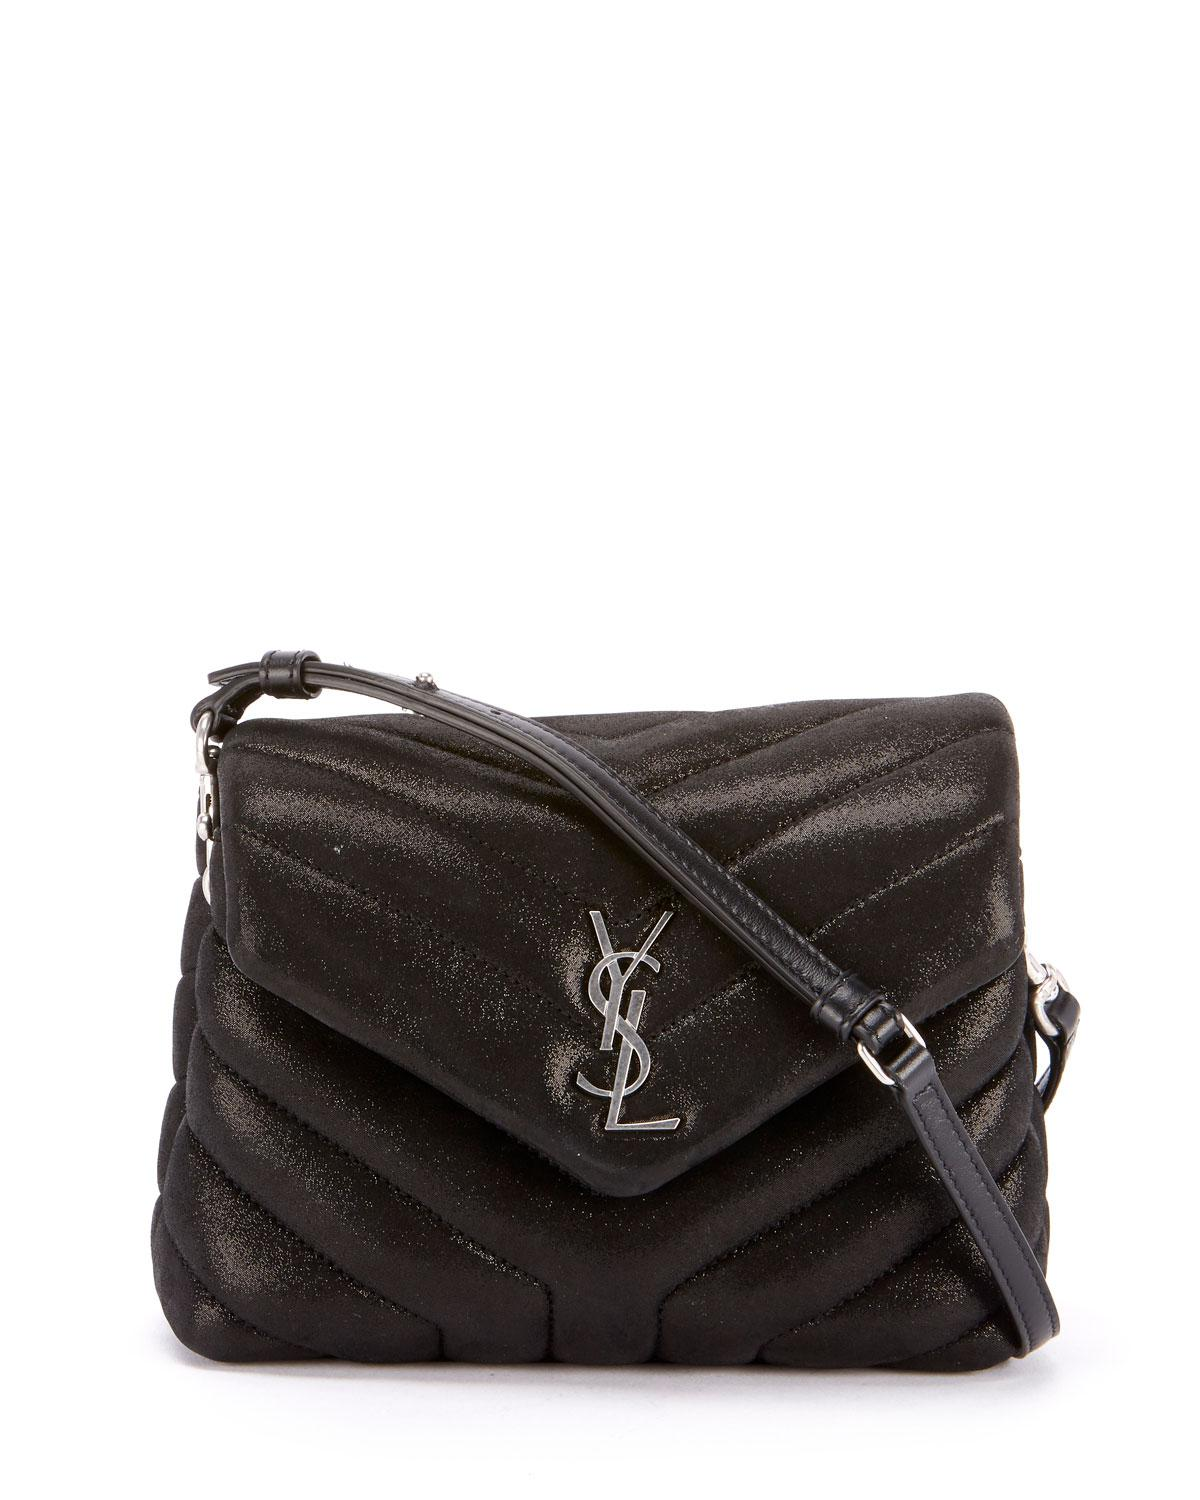 517d4a7e98 Lyst - Saint Laurent Loulou Monogram Ysl Mini V-flap Calf Suede ...